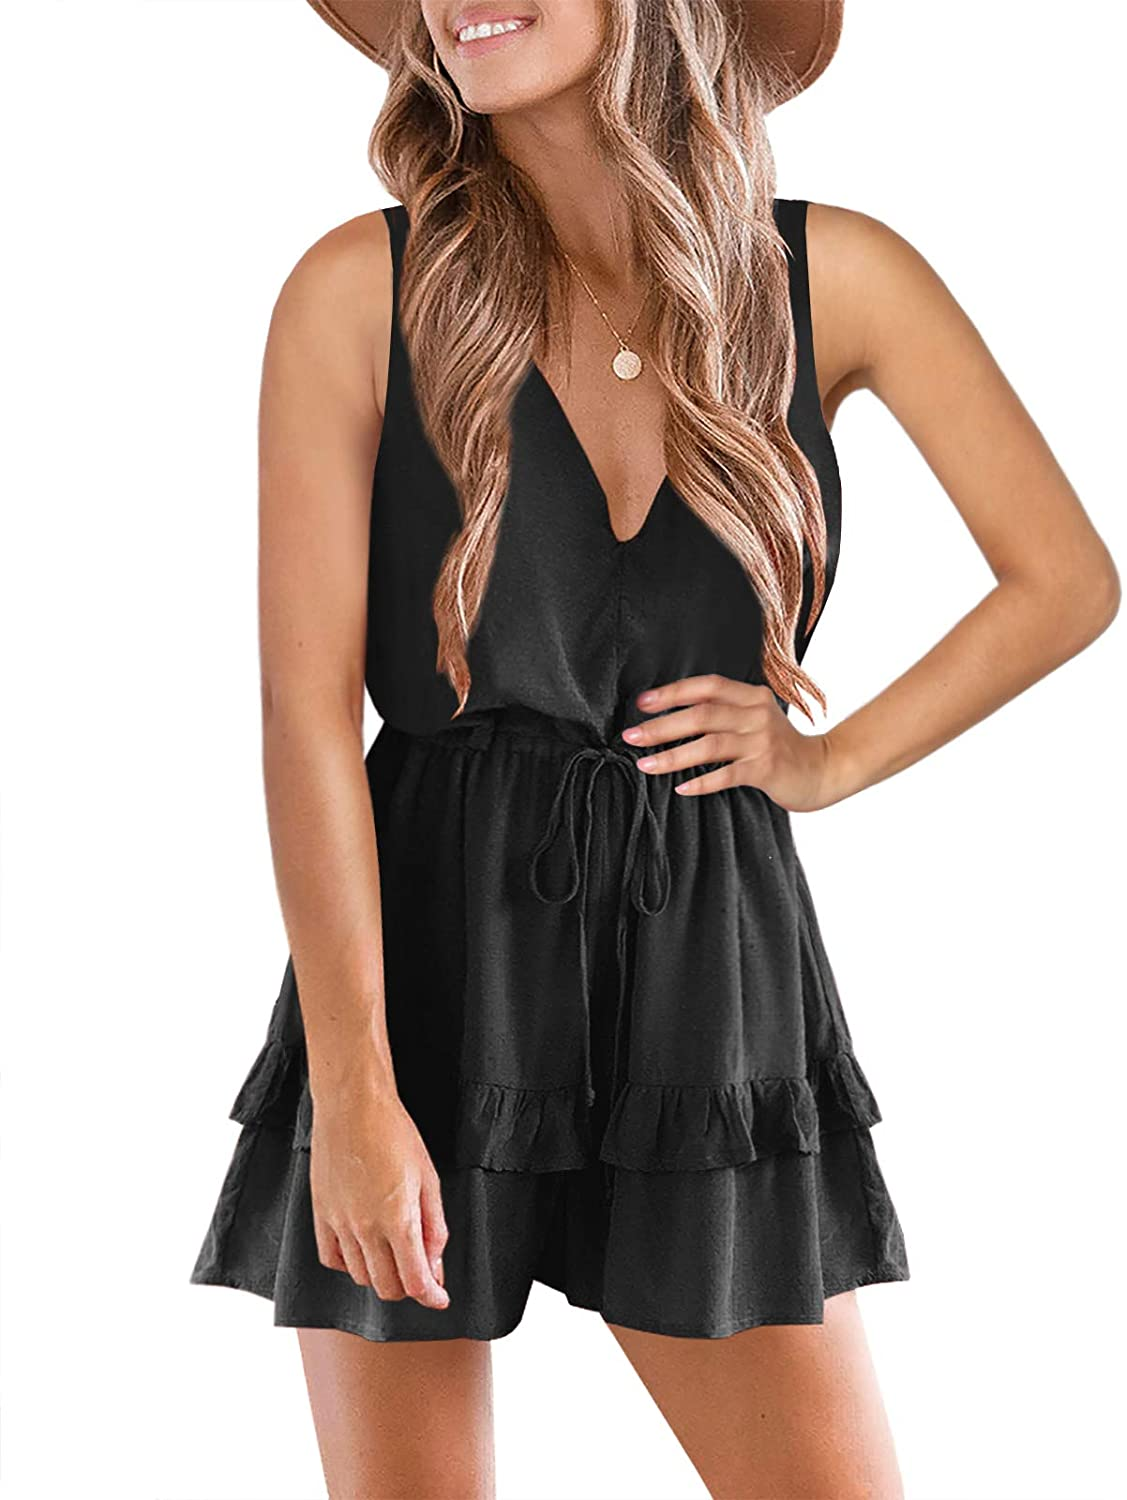 Beauty products Valphsio Womens V Neck Beach Tank Rompers S Flowy Baltimore Mall Layered Ruffle